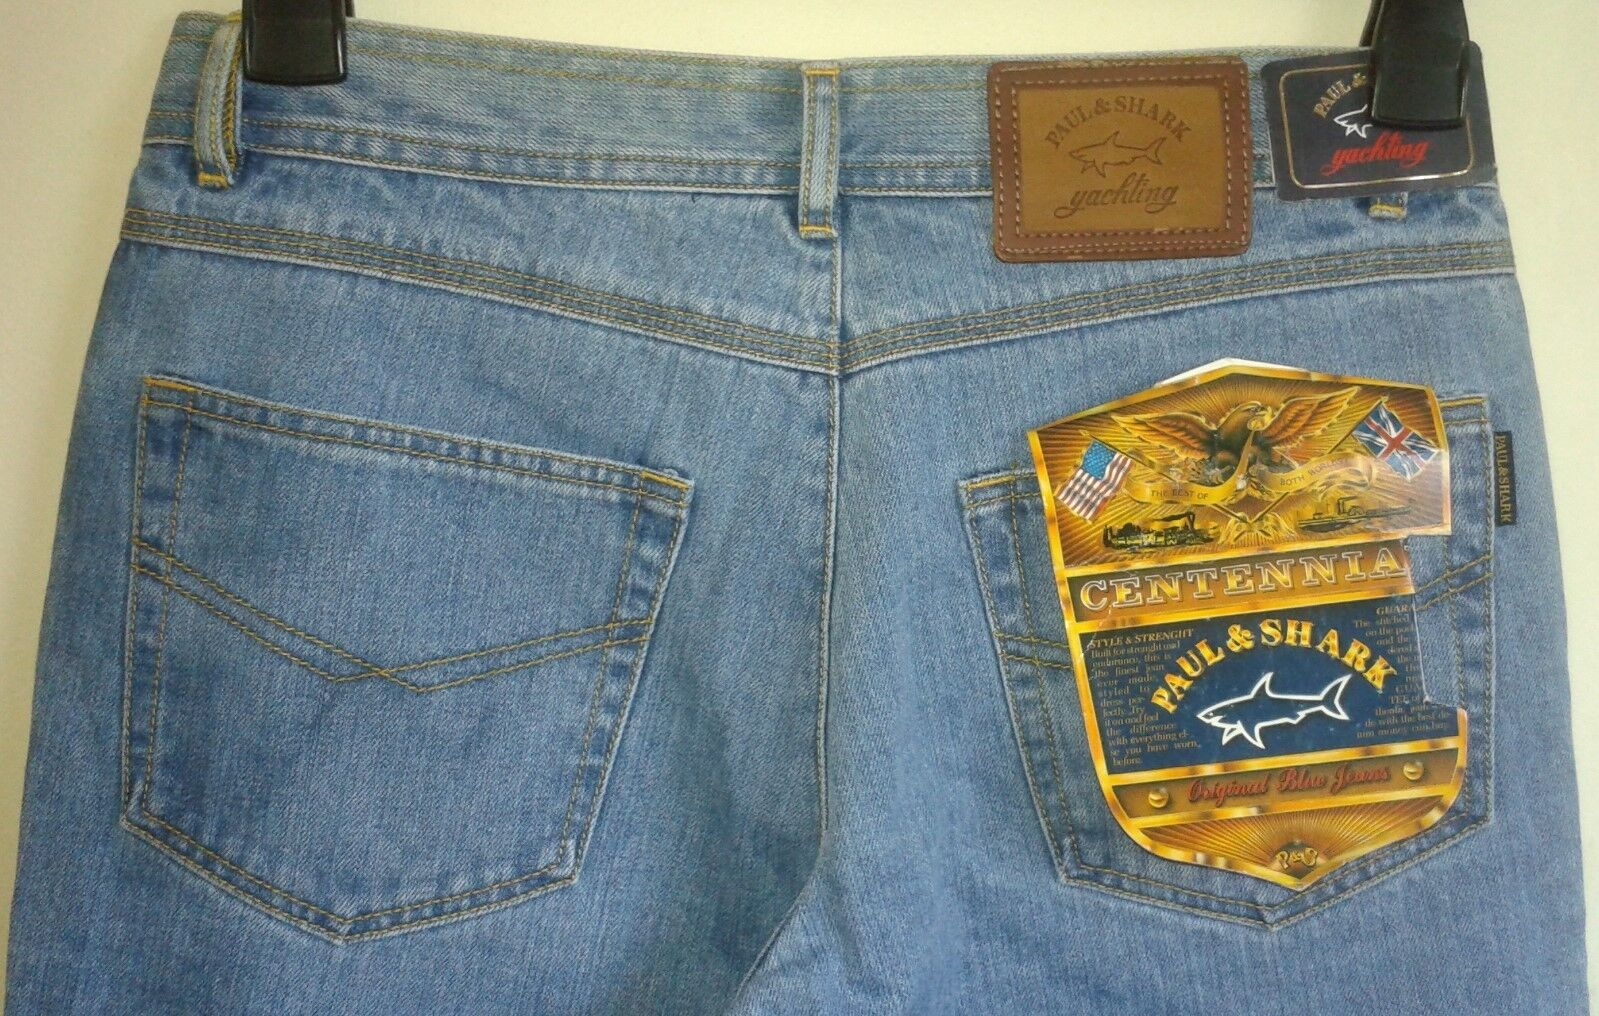 Paul & Shark Yachting Limited Edition Centennial bluee Jeans  W30 L33